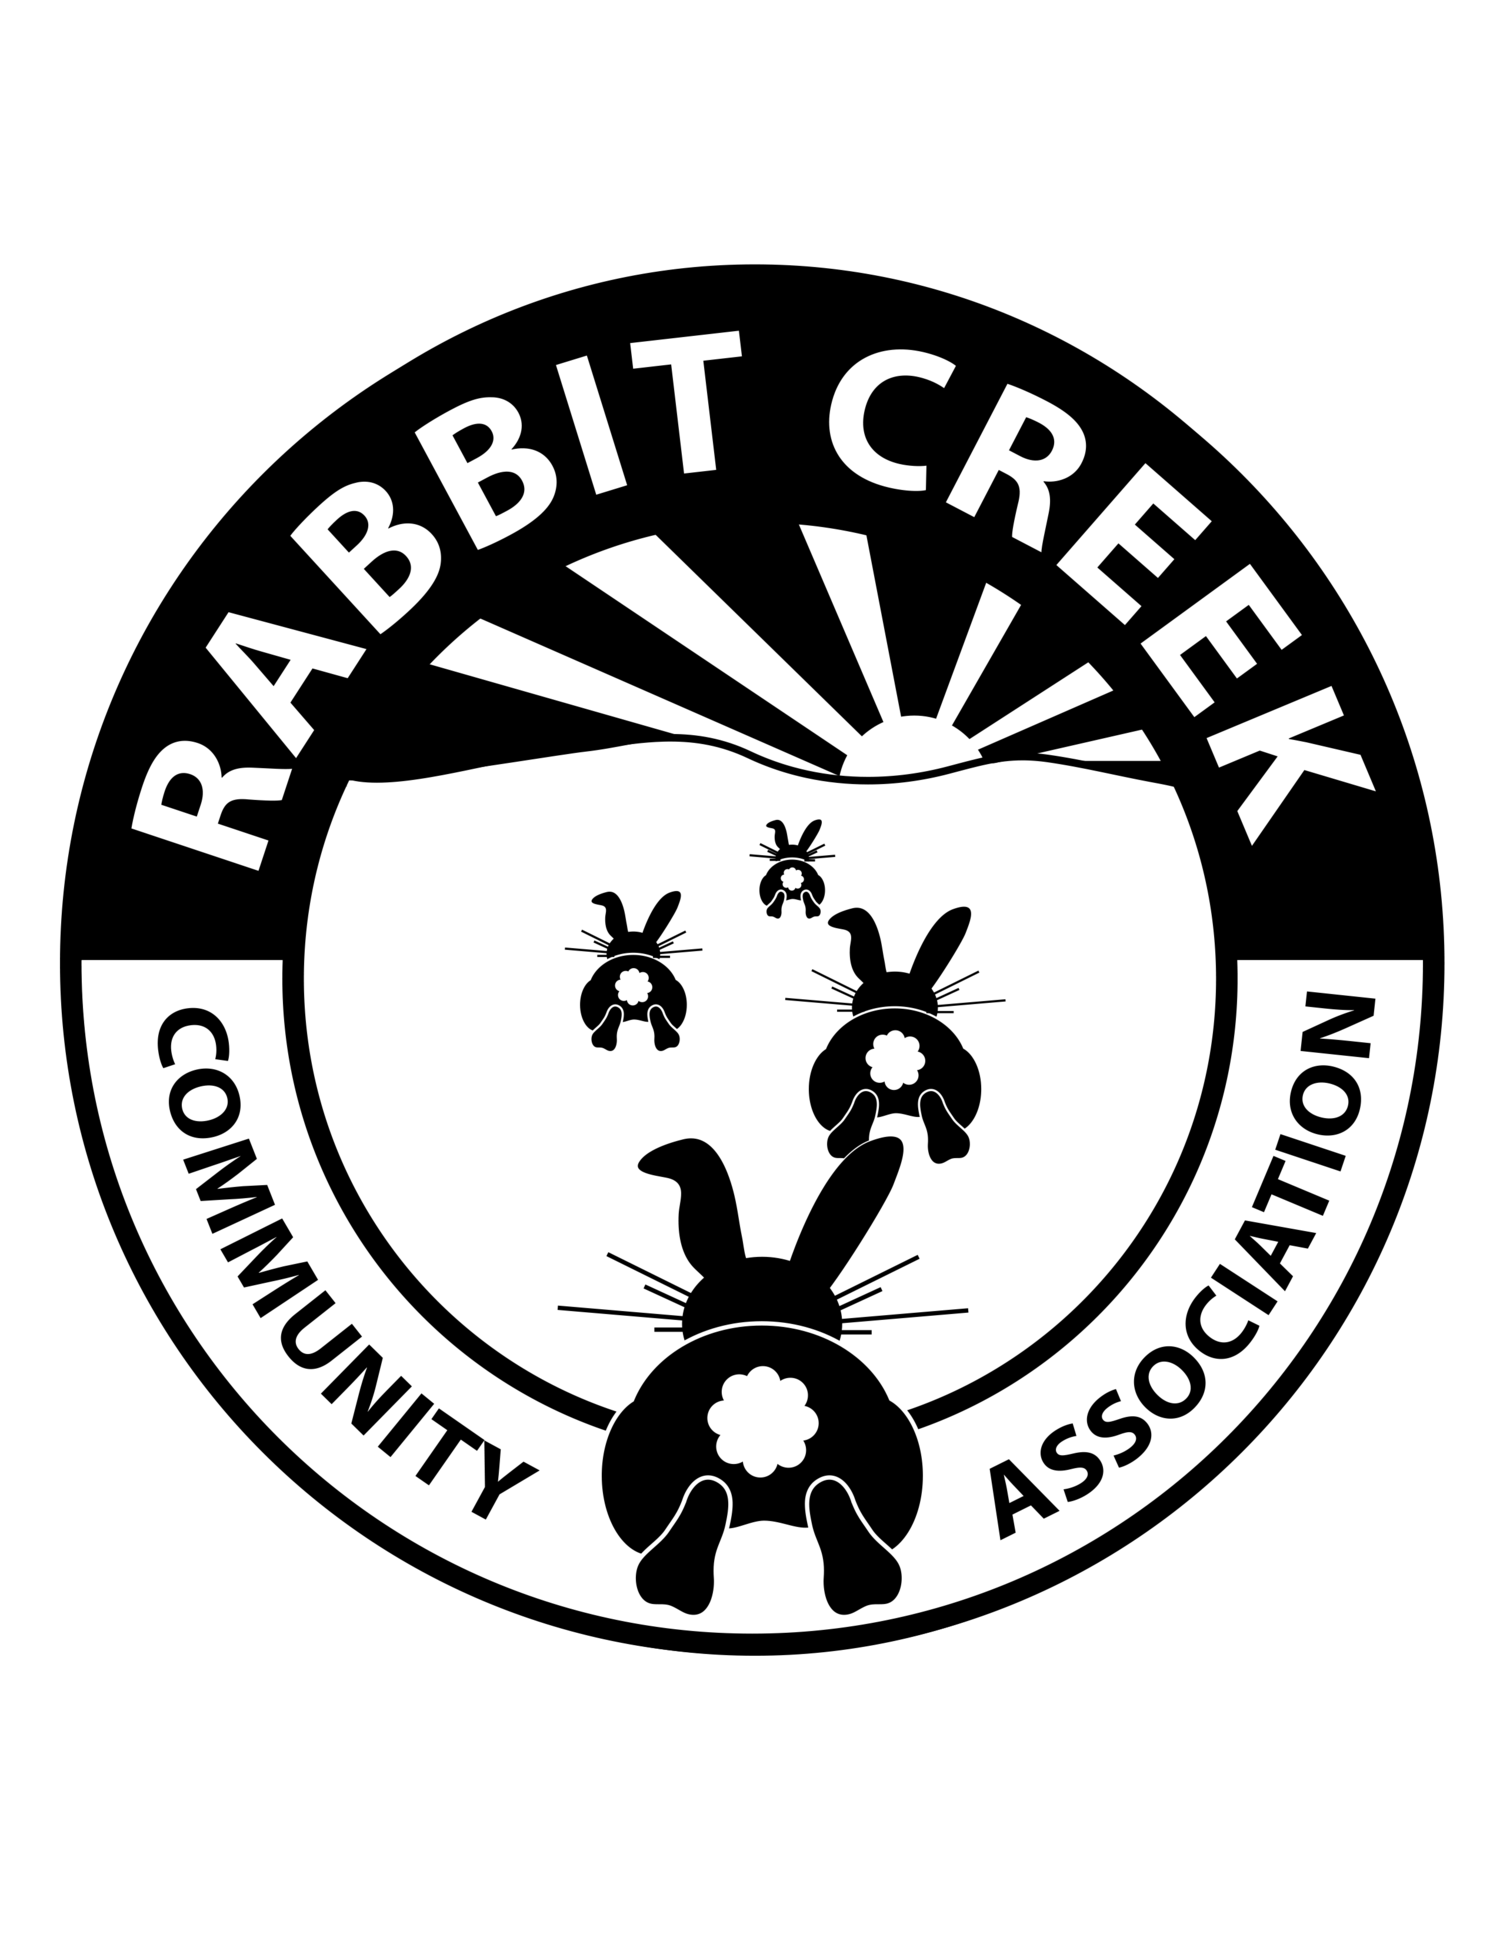 Rabbit Creek Community Association